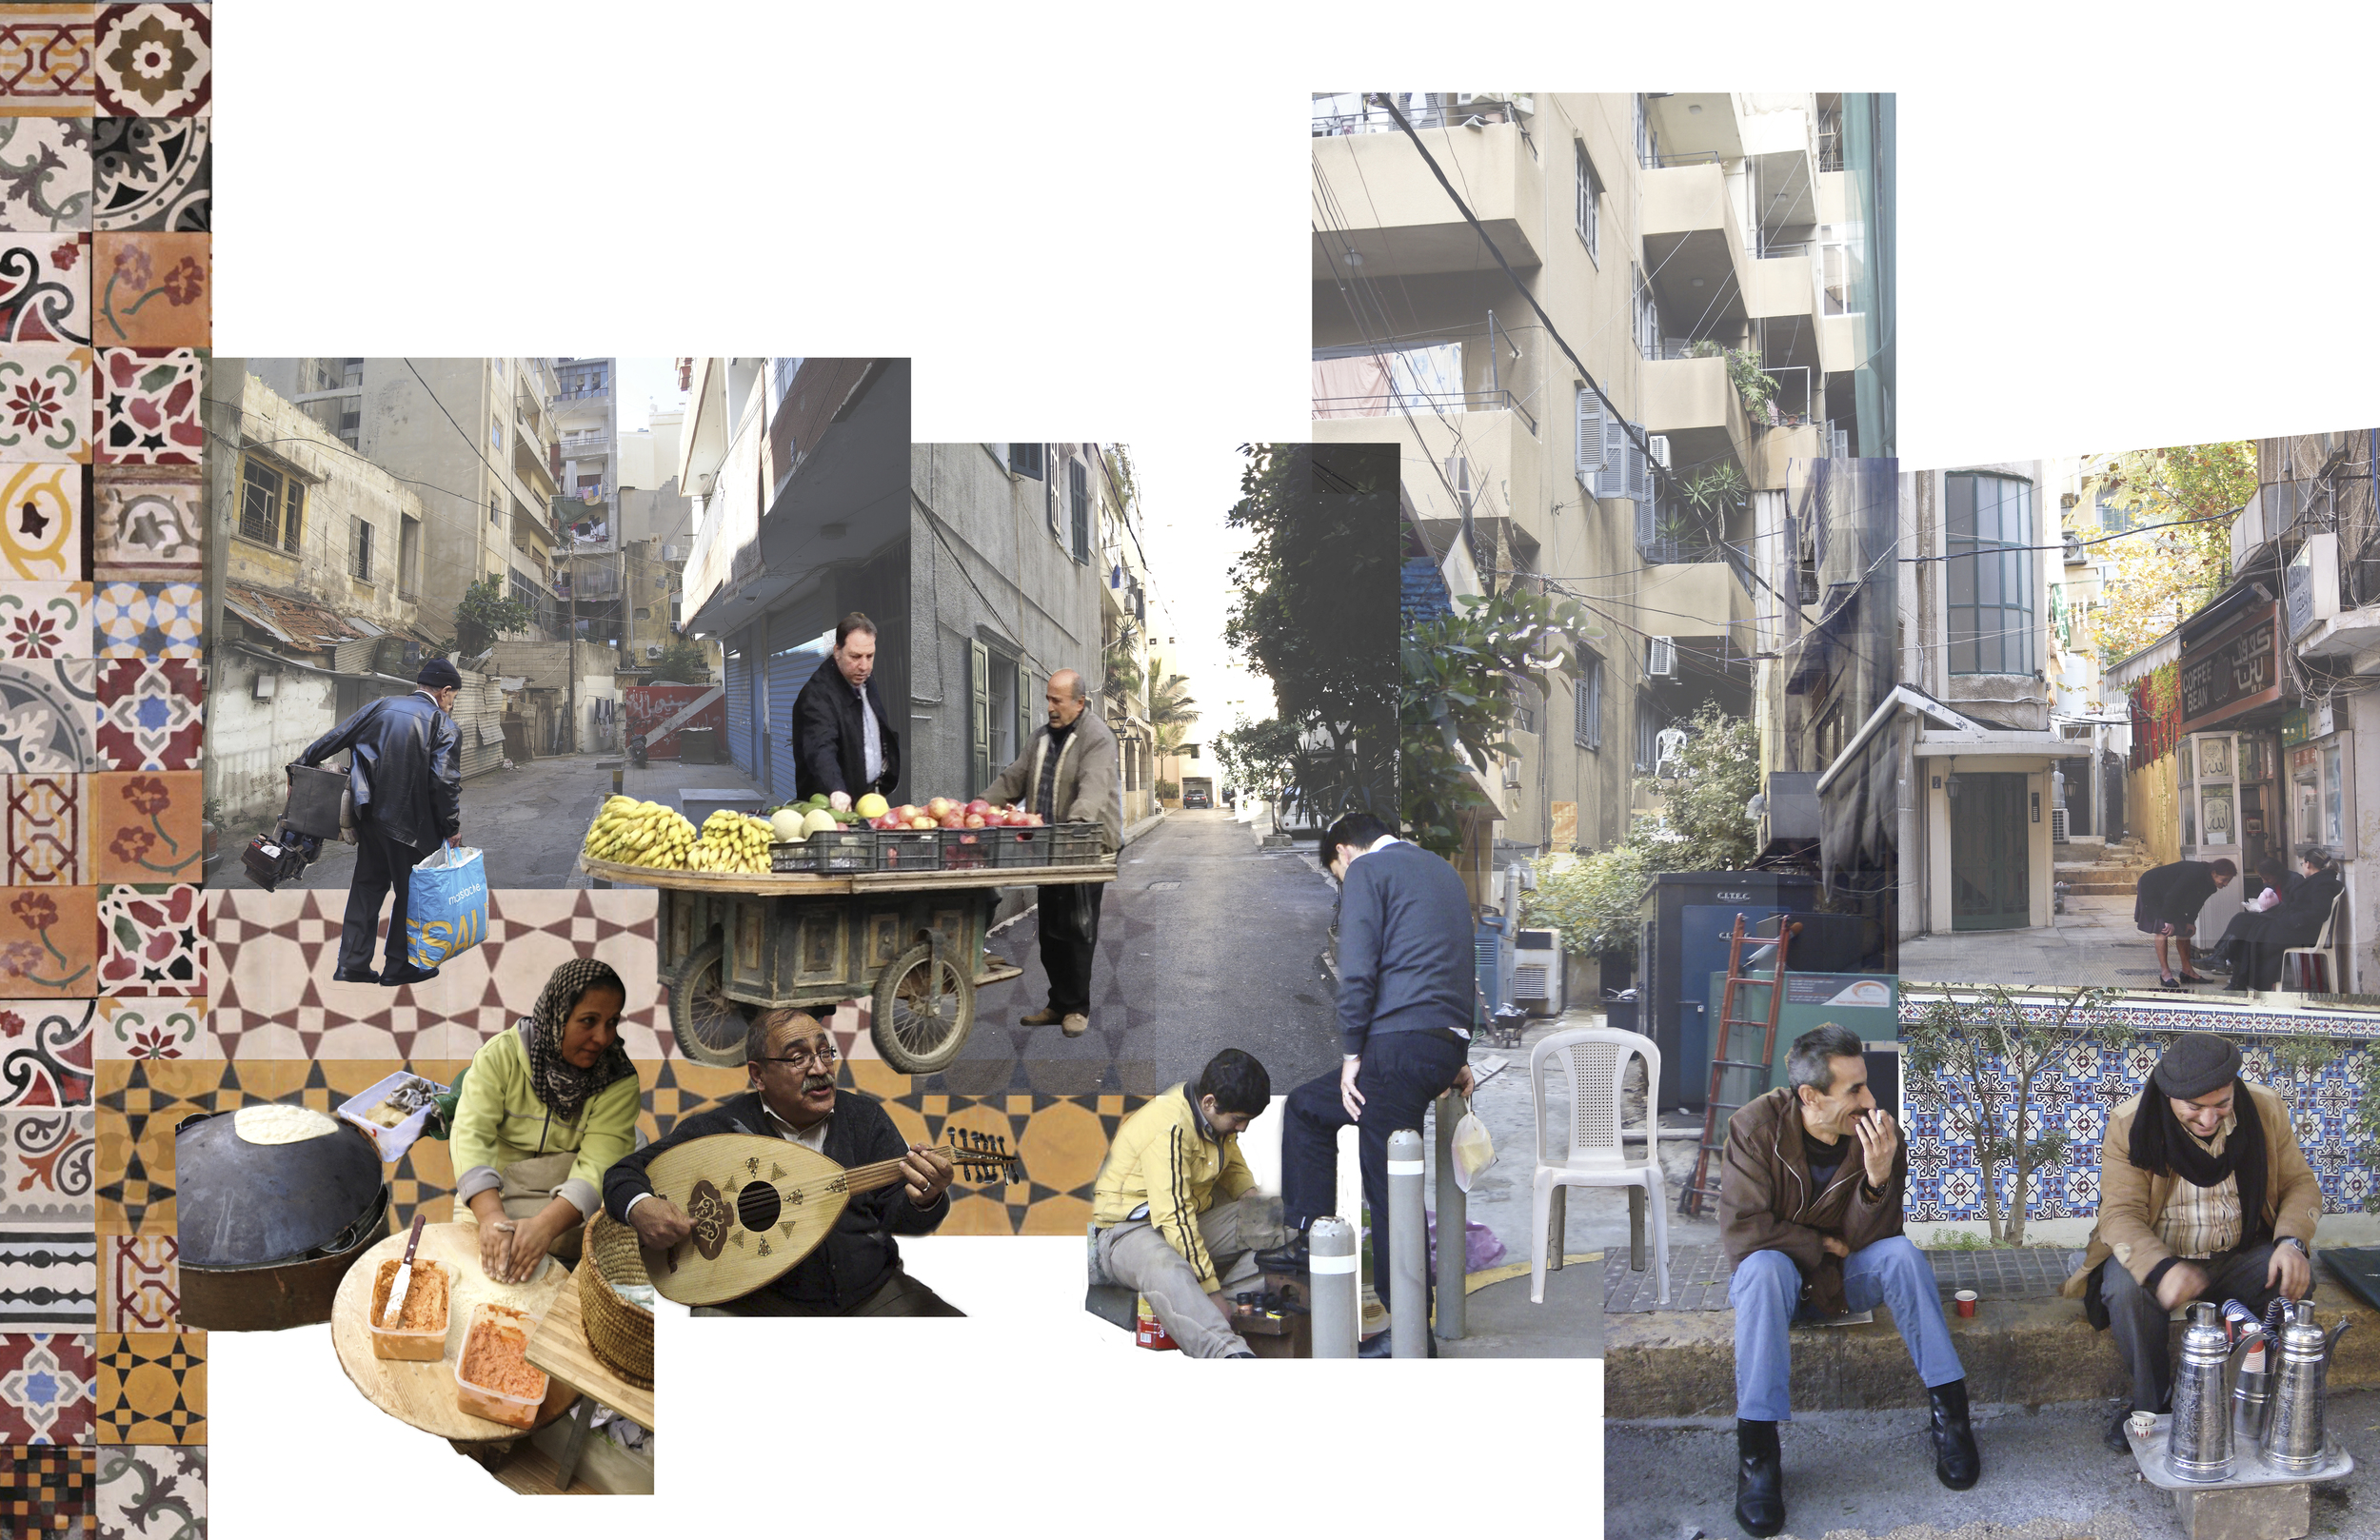 Collage representing the uniqueness of the streets and in-between spaces.   Most important elements of culture are portrayed through the people and  the street-scape extracting the layers of the city (social, political, and strong connection to memory in an area faced with constant conflict).